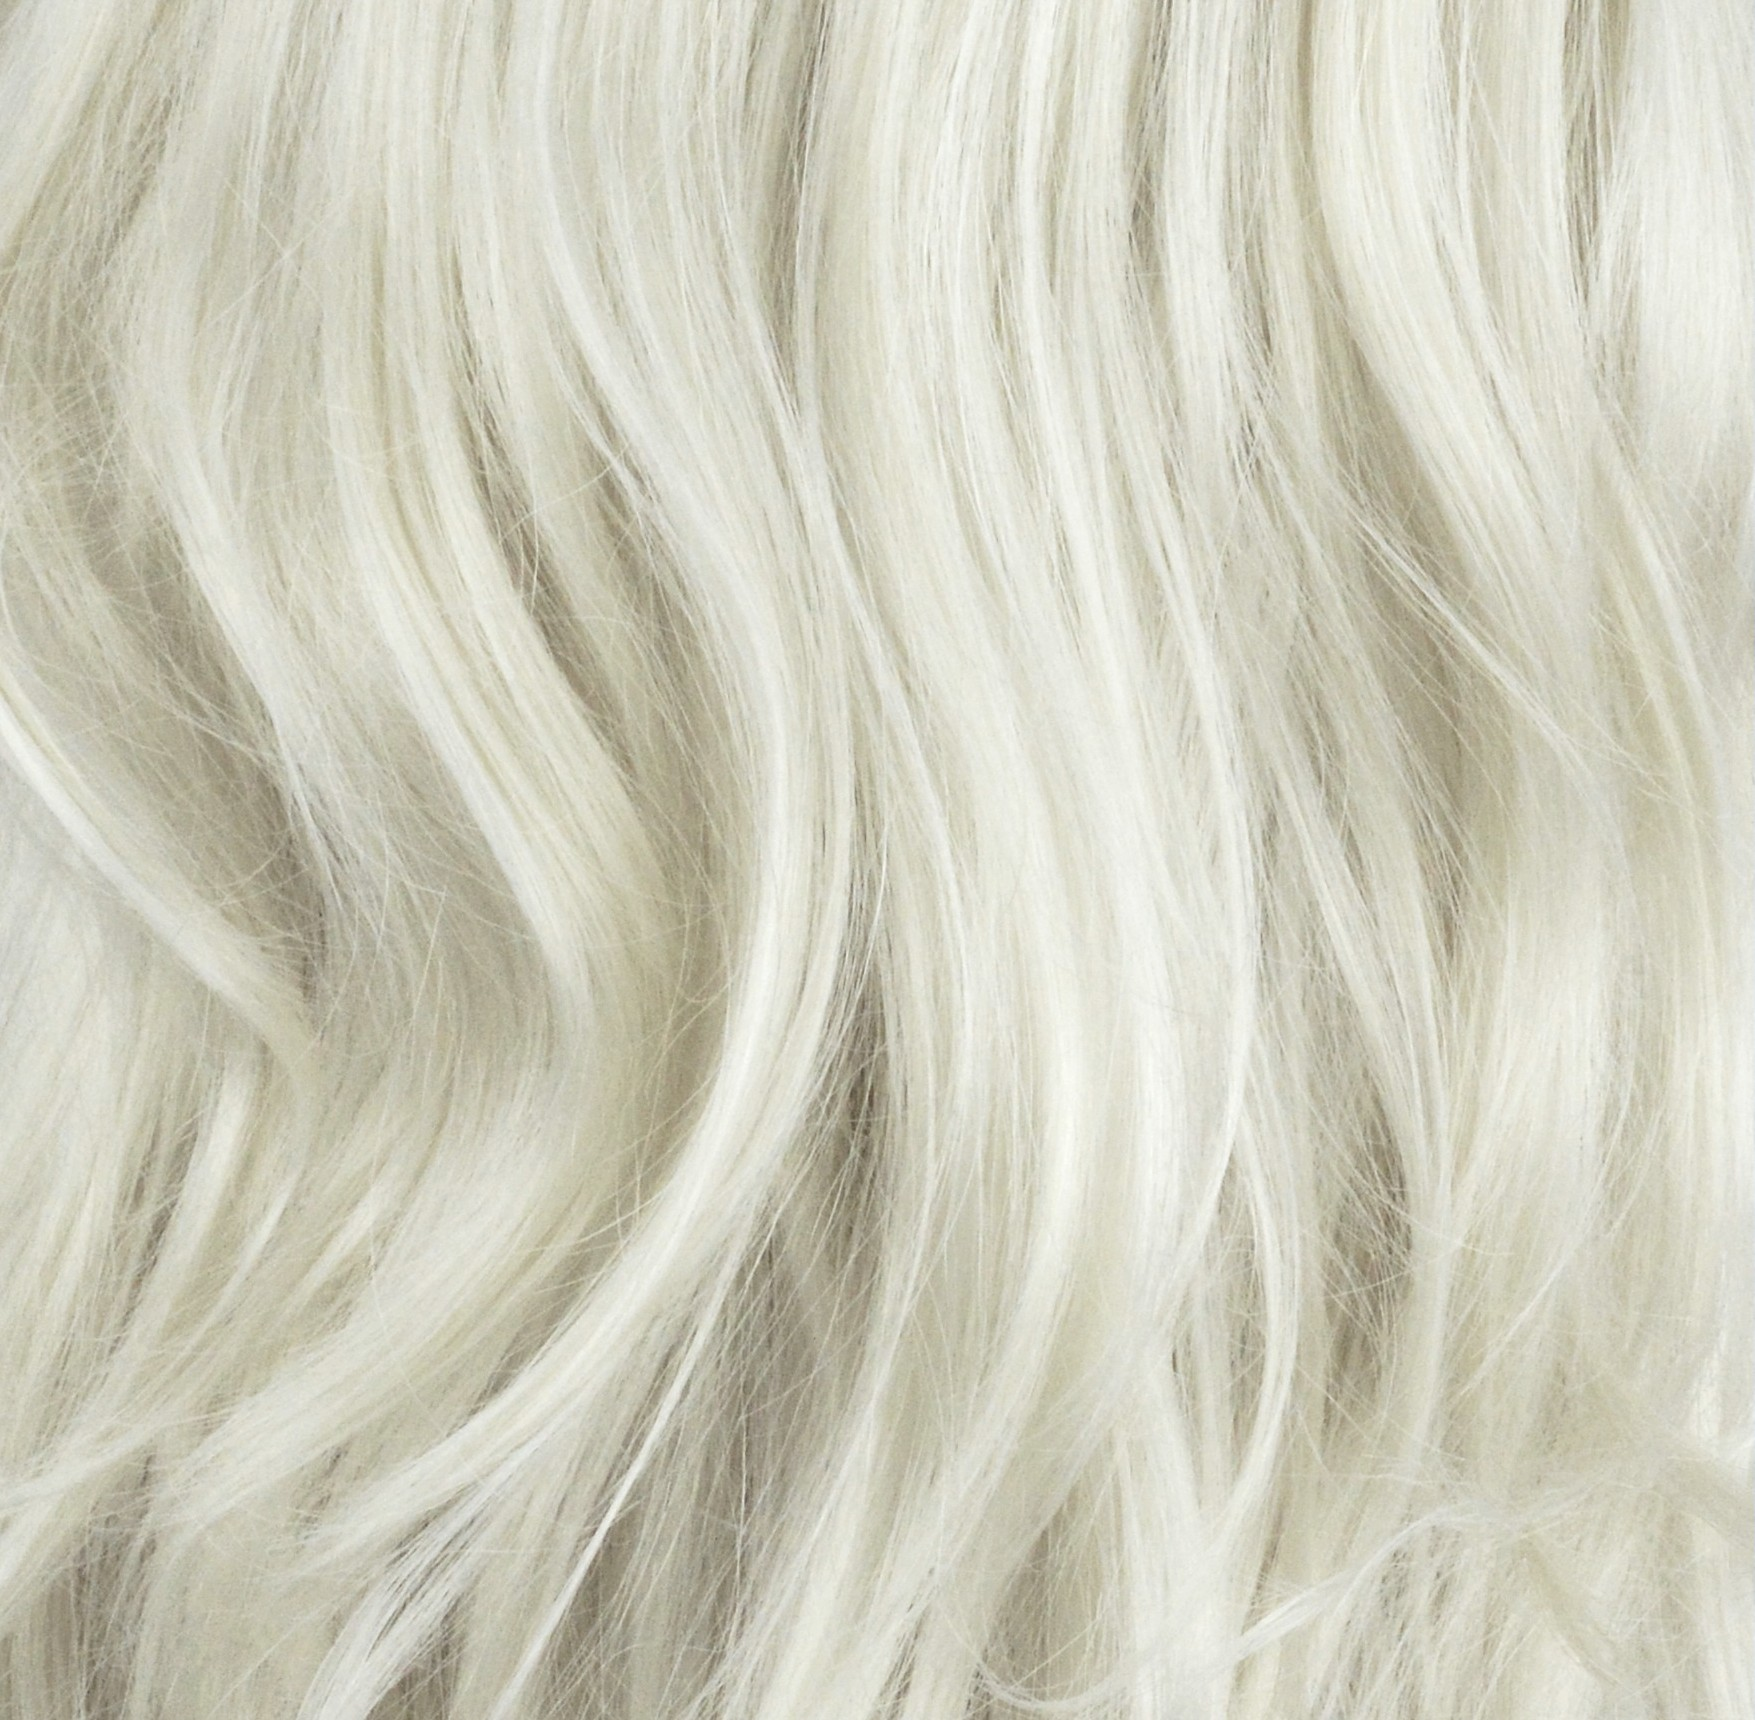 20 Clip In One Piece Straight Platinum Blonde 1660 Full Head 1pc